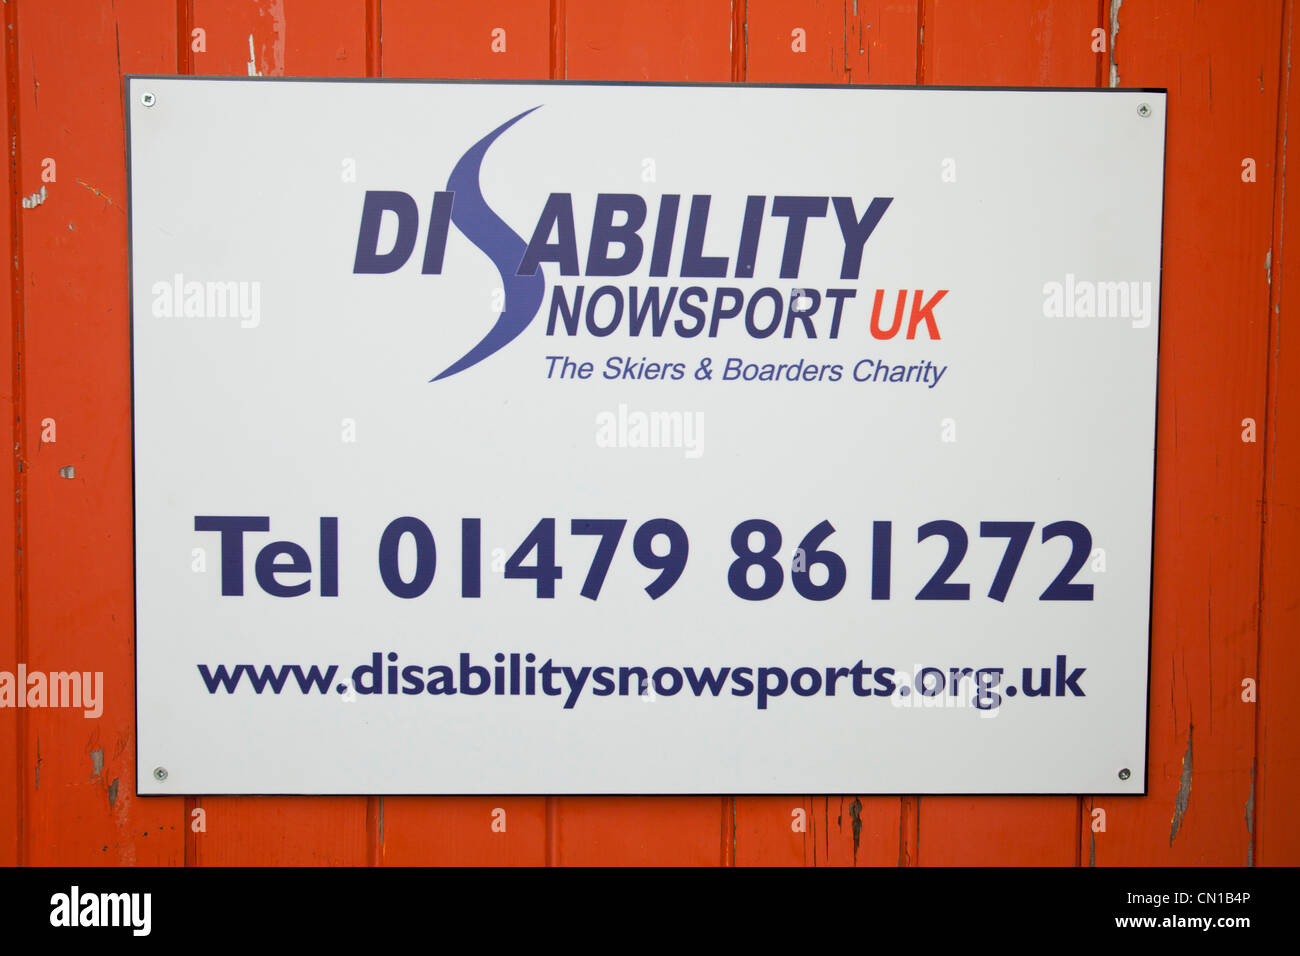 Disability skiing on Cairngorm, Scotland, UK. - Stock Image